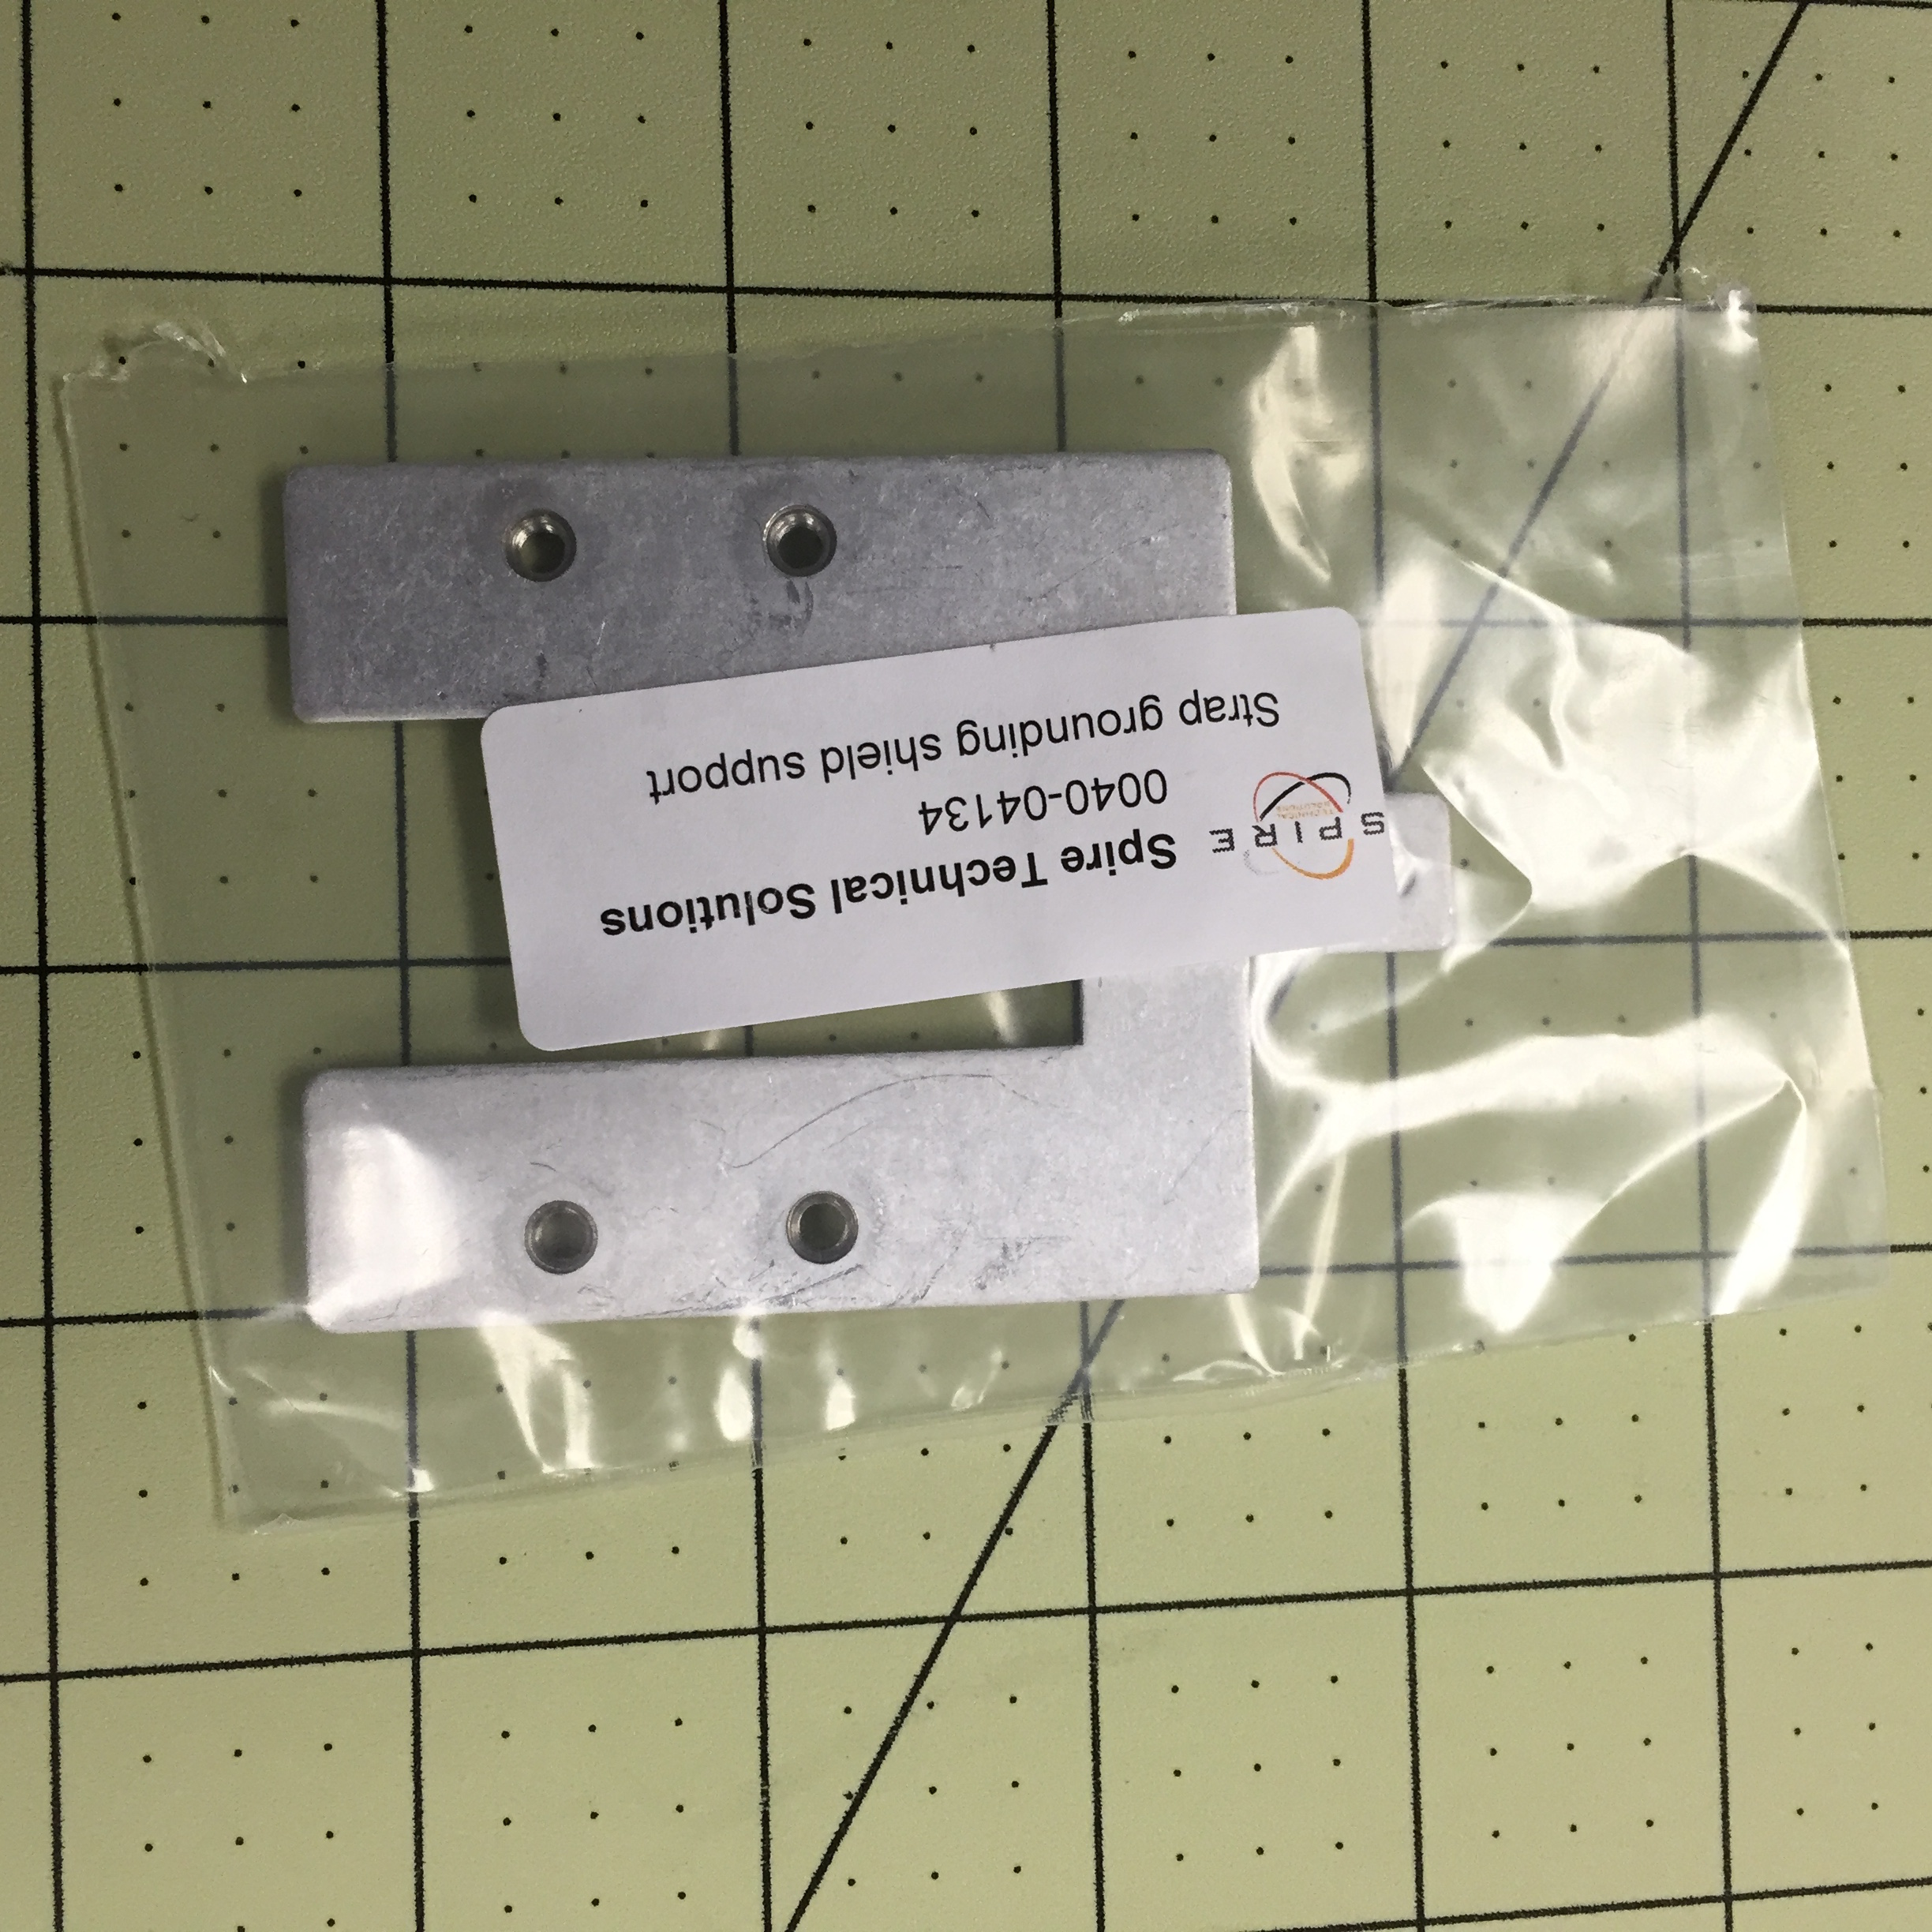 Strap grounding shield support